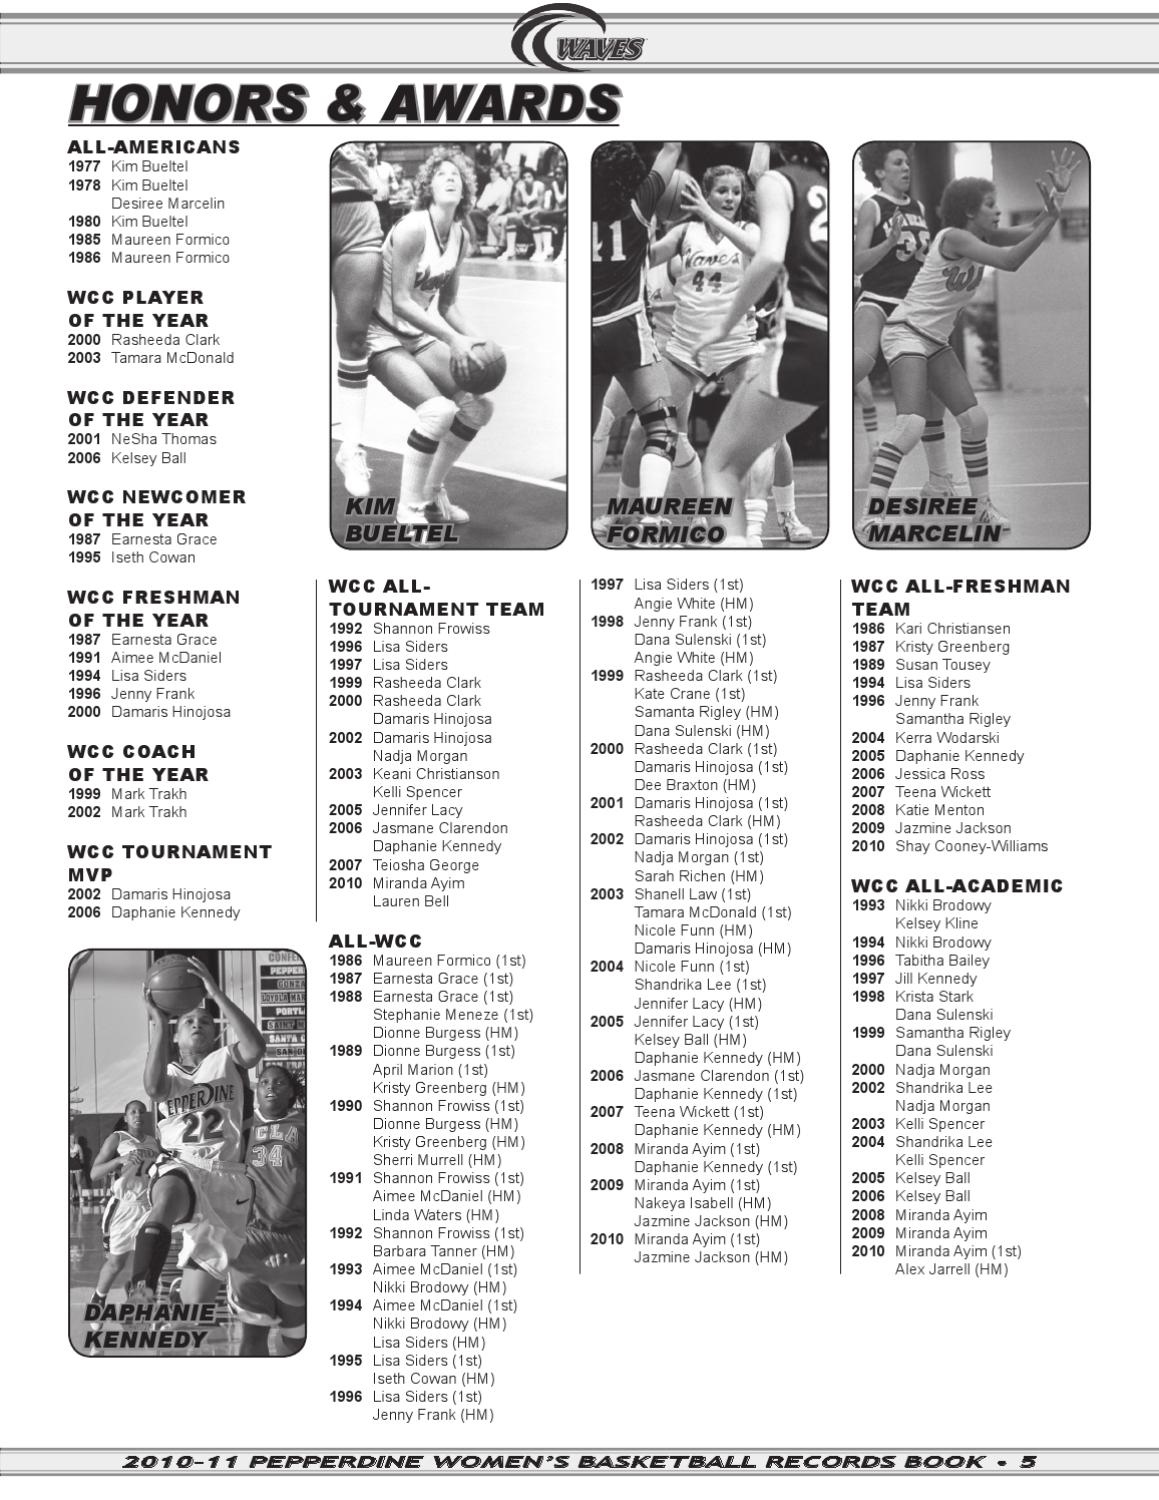 2010-11 Pepperdine Women's Basketball Records Book by